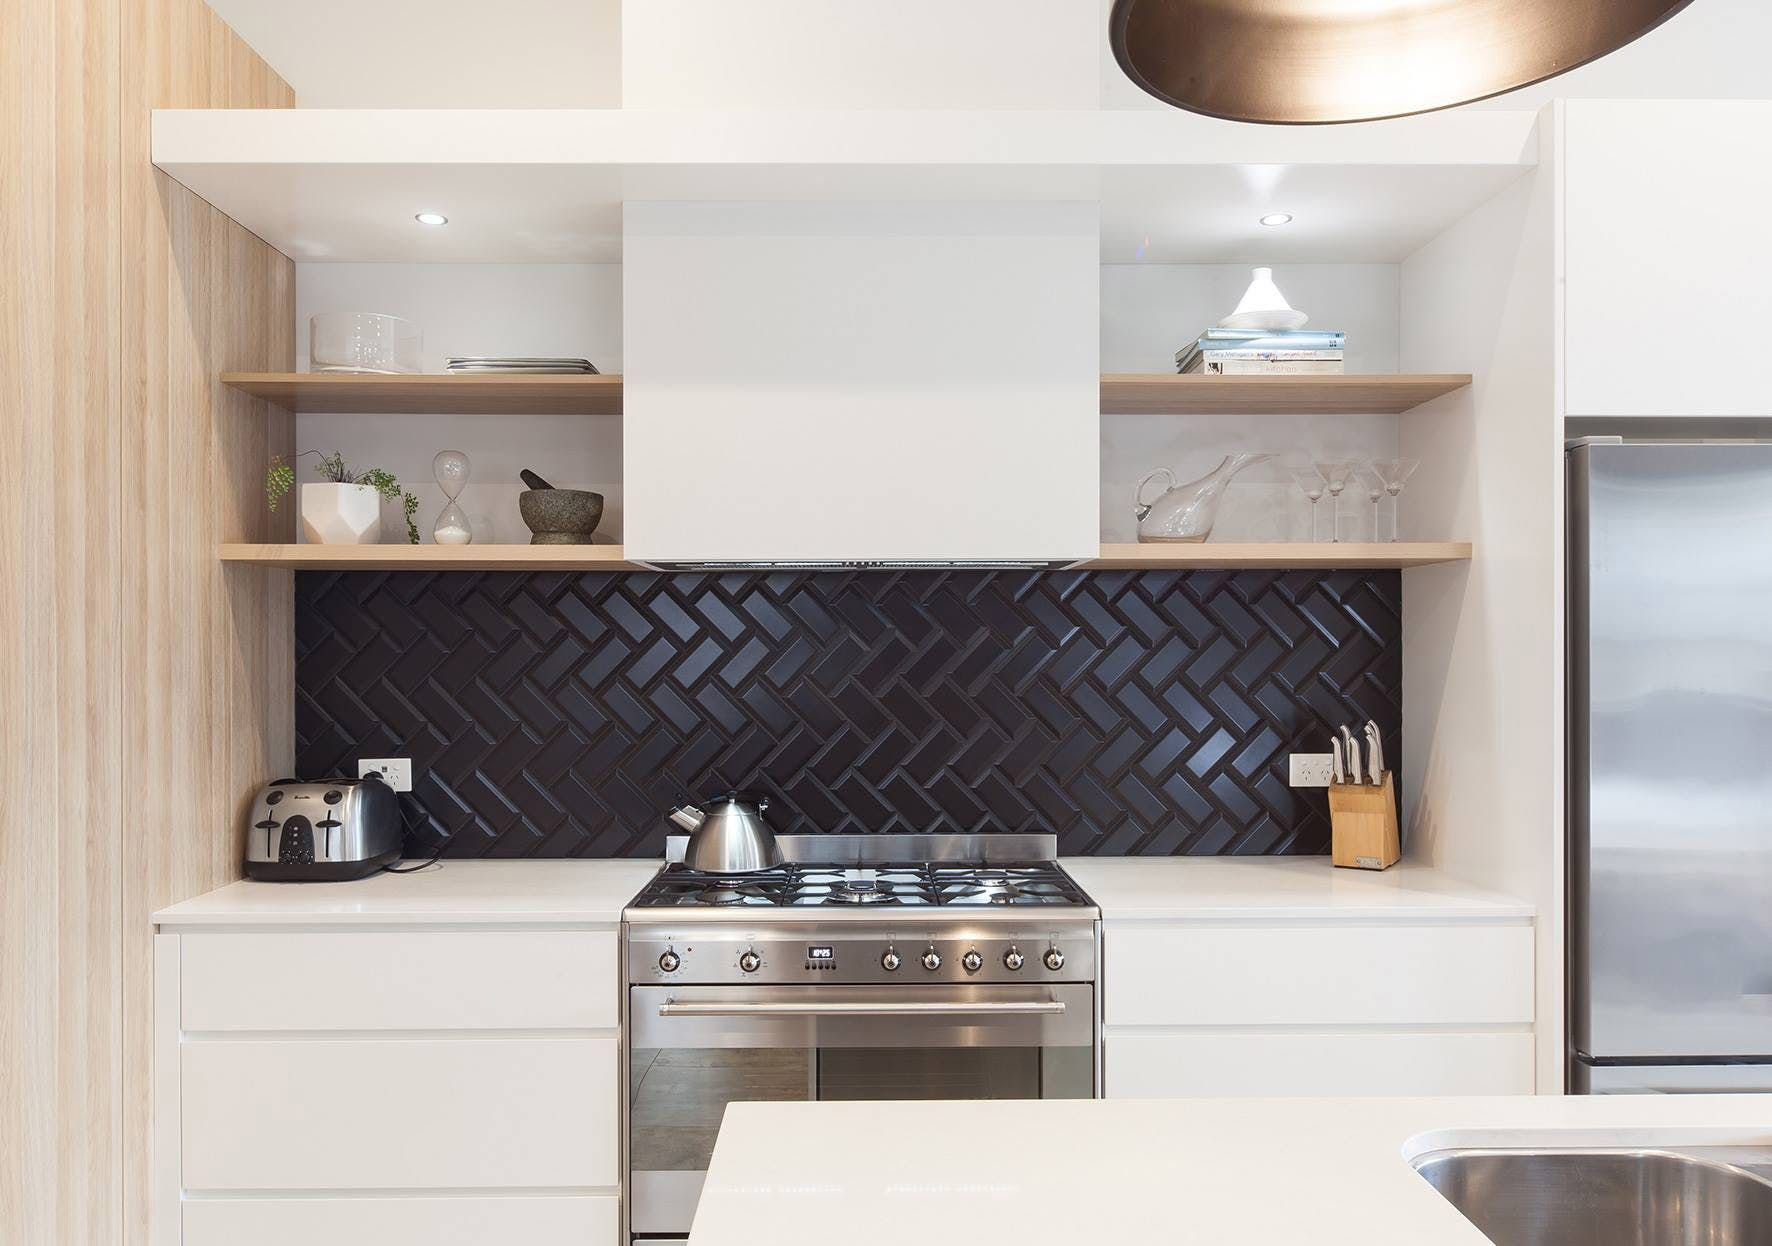 - The Sophisticated New Tile Trend We Can't Get Enough Of Black